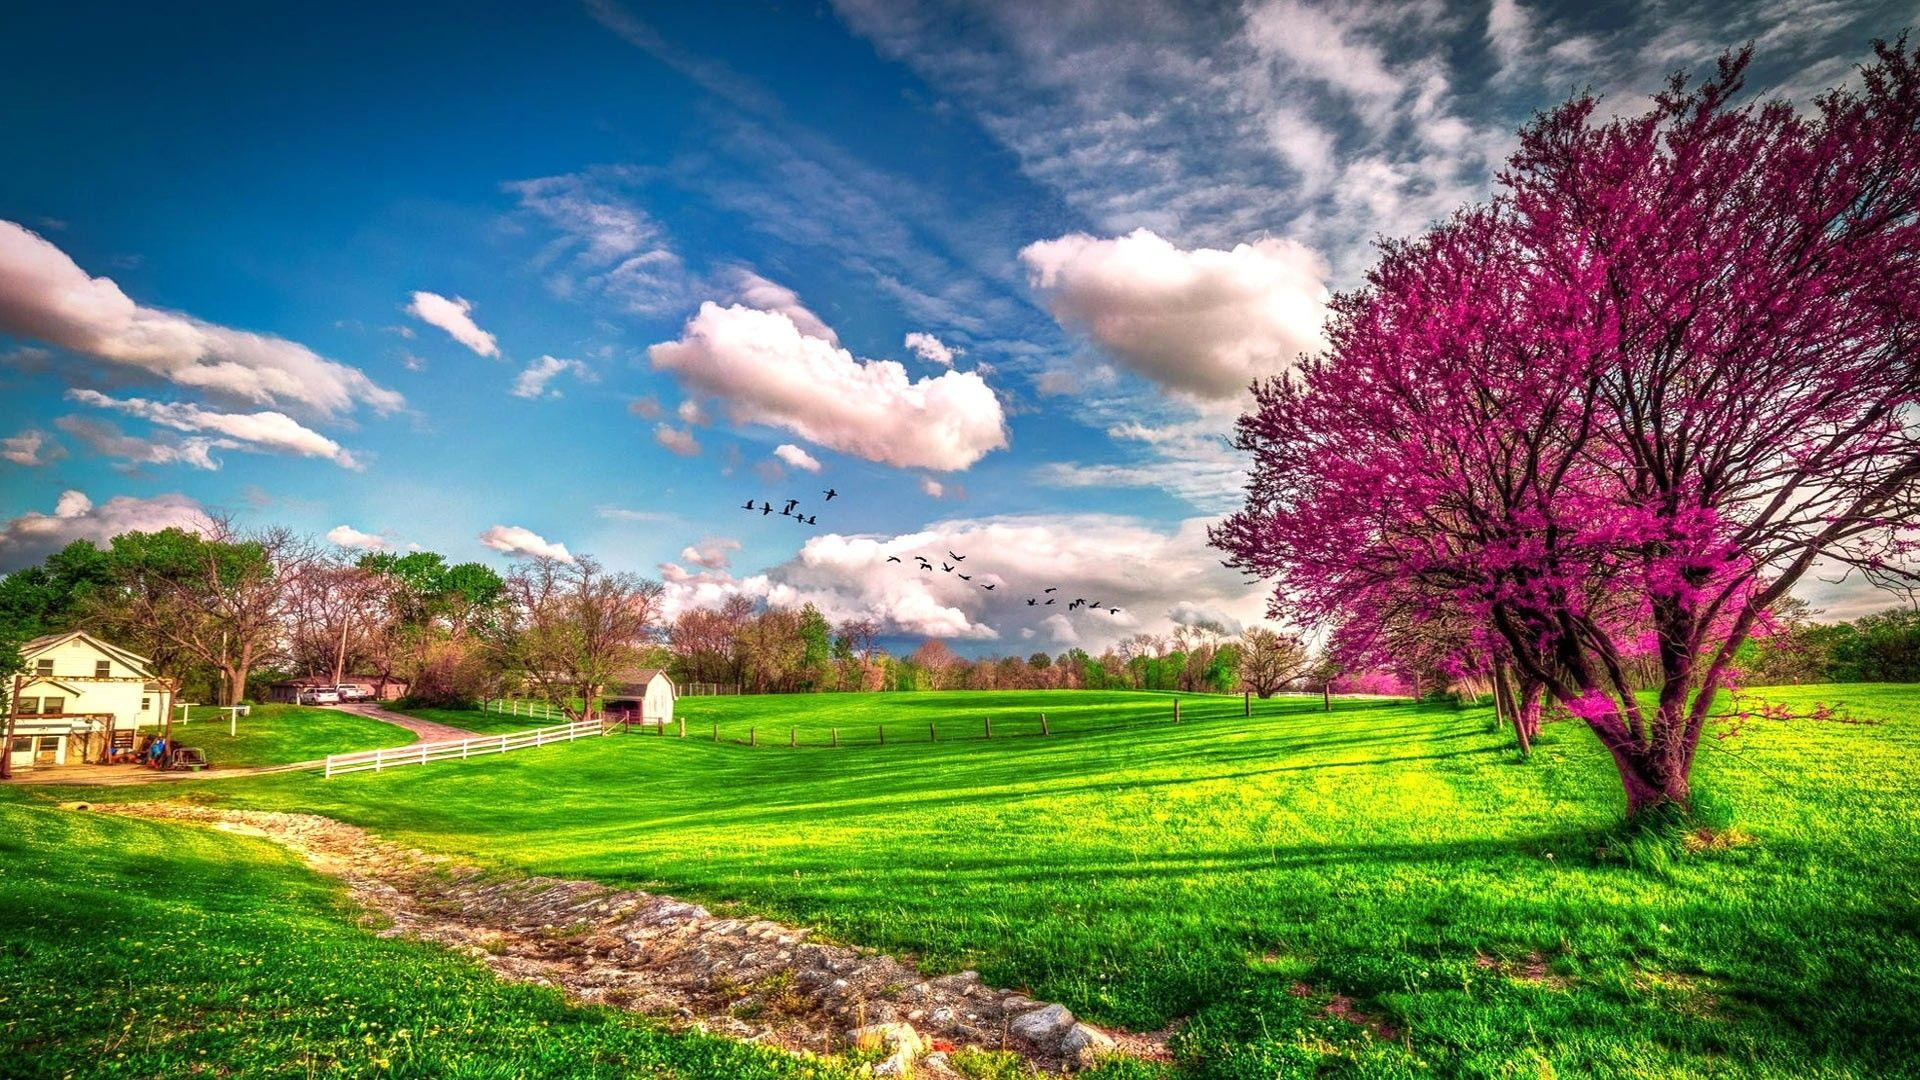 HD Spring Nature Backgrounds